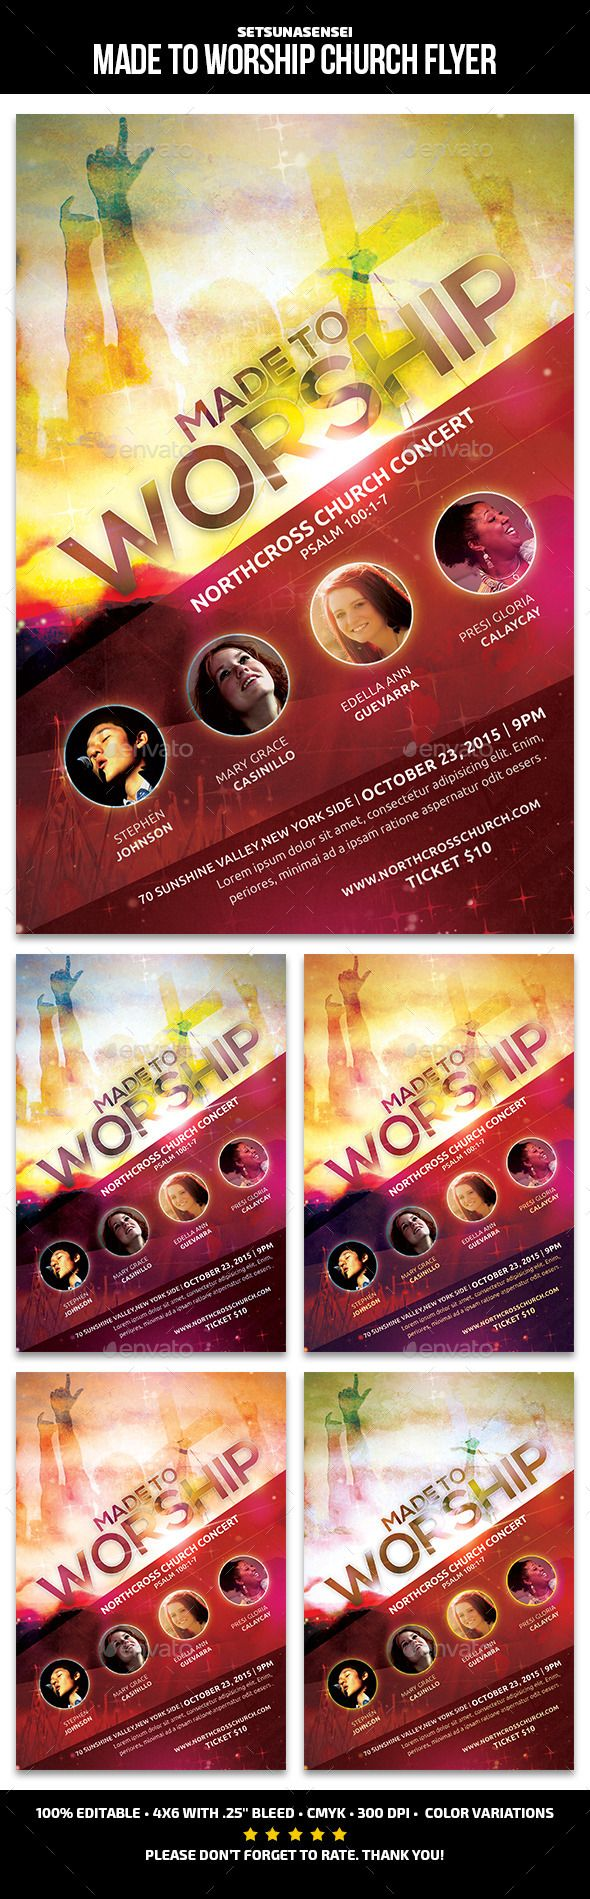 youth events church flyer page 1 bible study invites made to worship church flyer